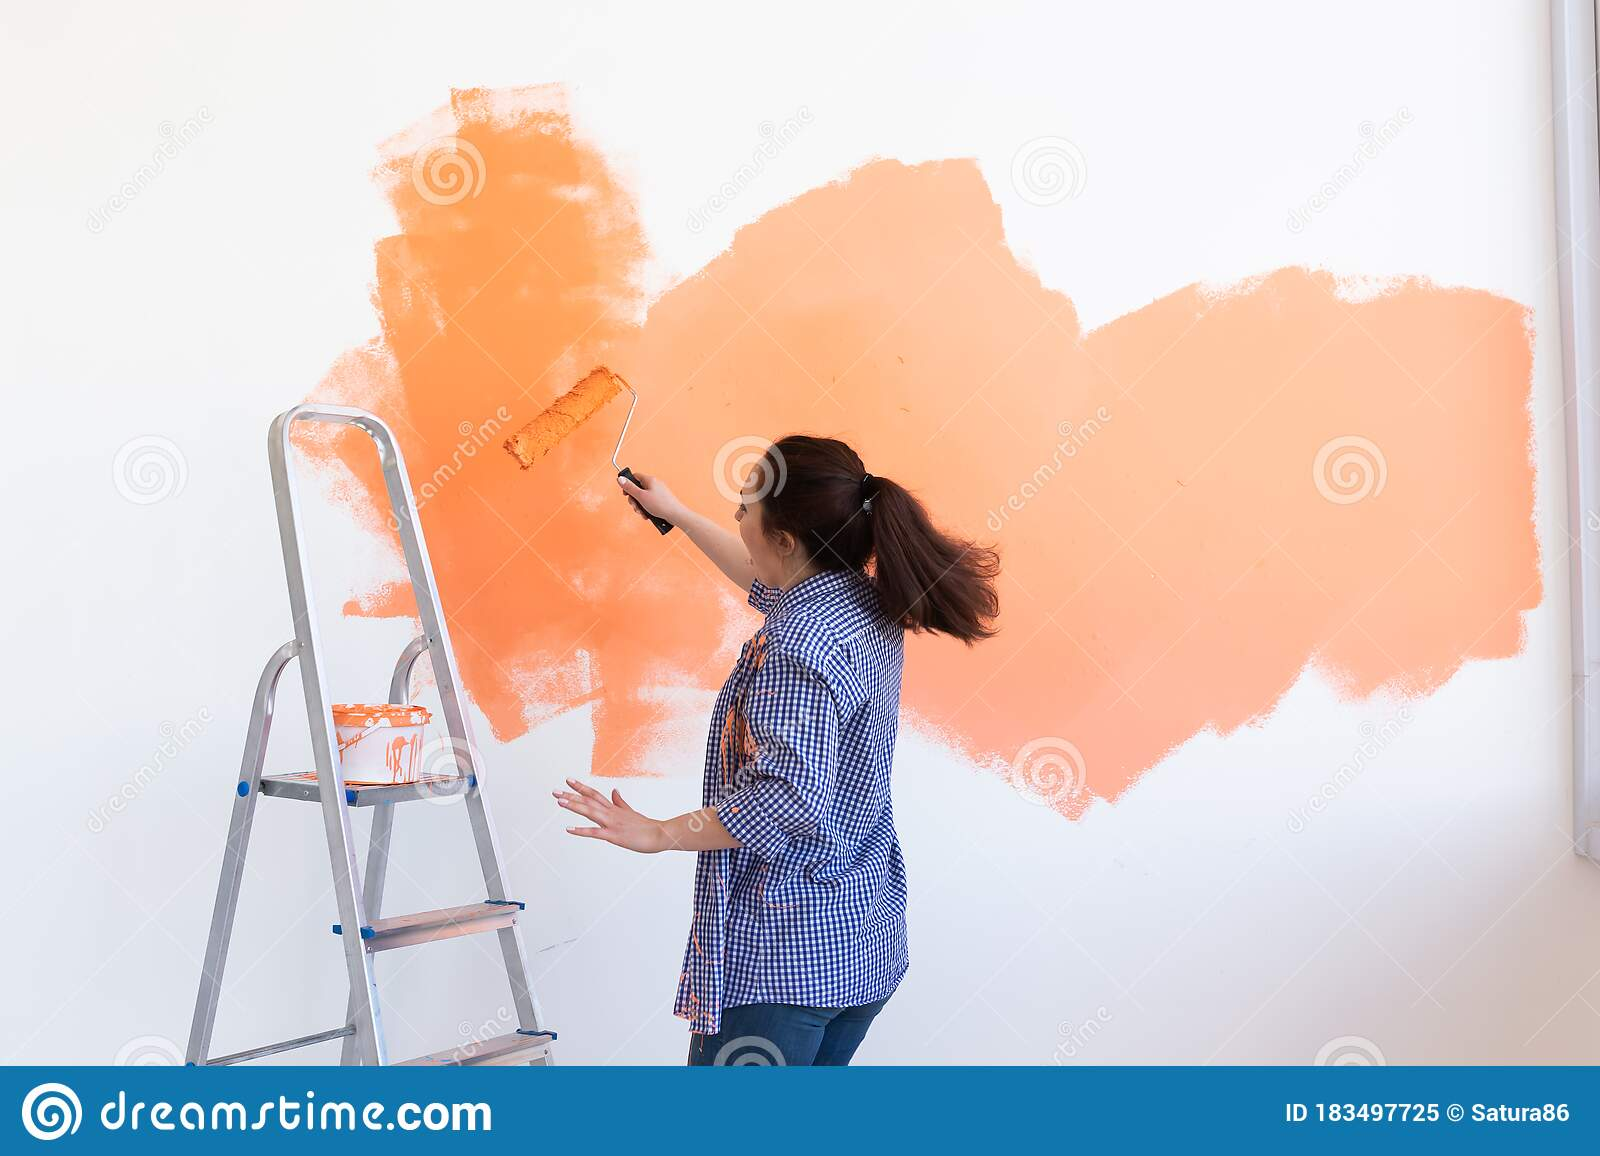 300 Woman Painting Wall Funny Photos Free Royalty Free Stock Photos From Dreamstime